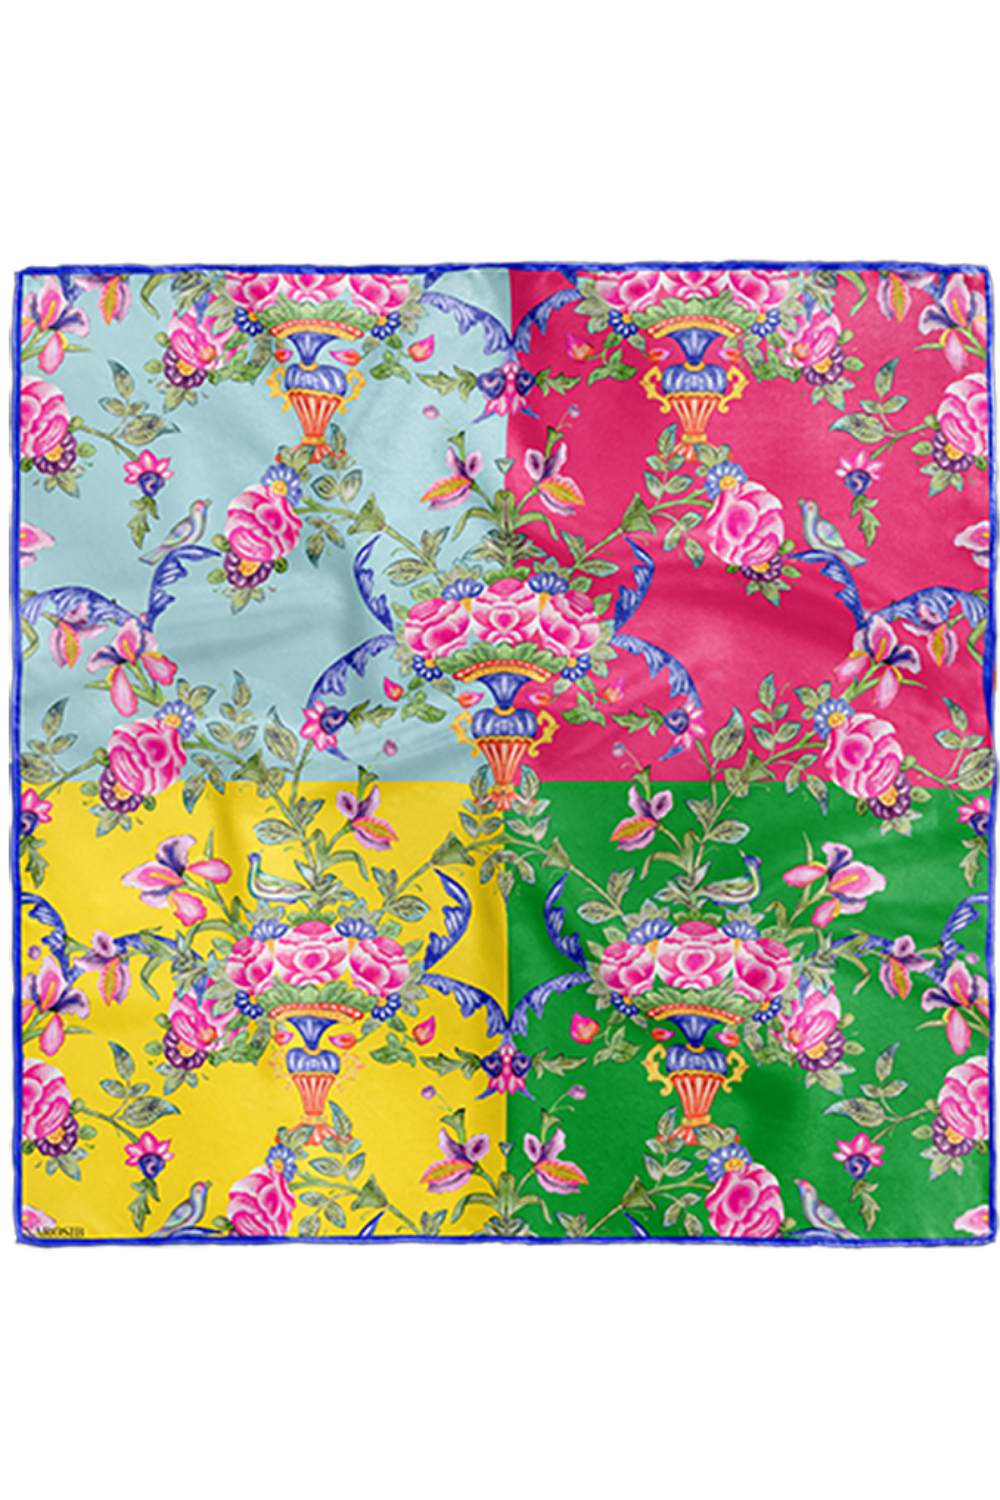 GOLESTAN multi-colour Print Scarf in silk satin with hand rolled edges